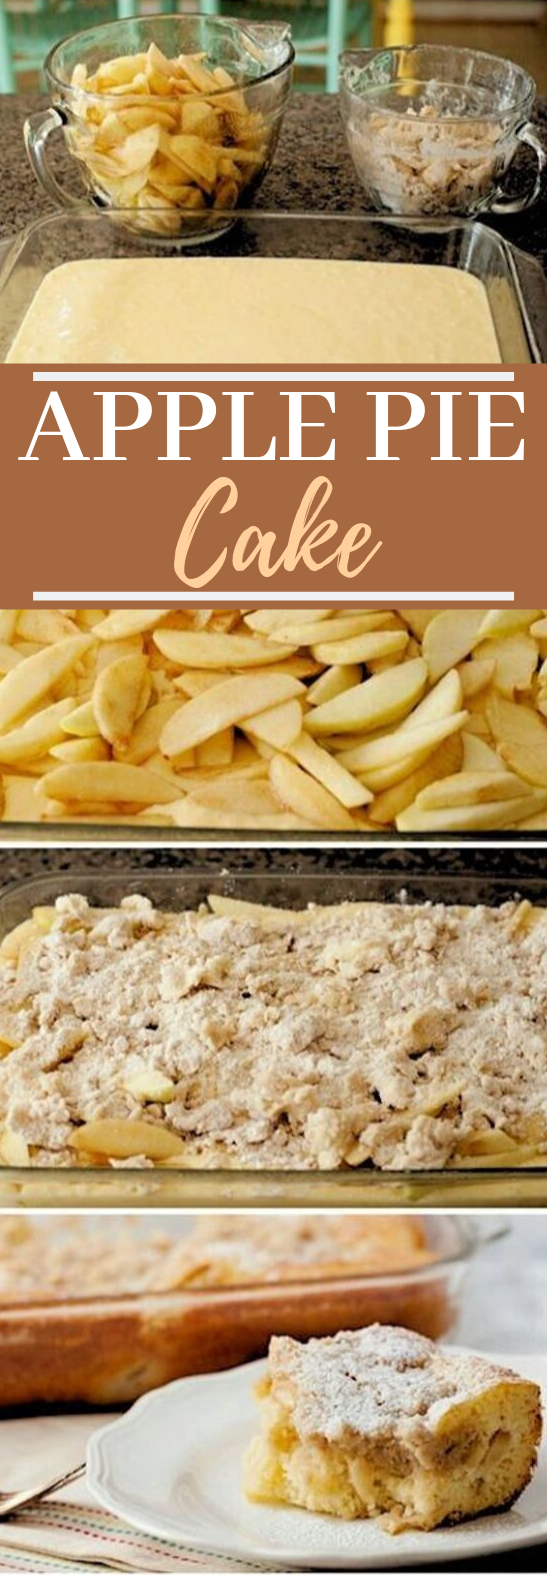 Apple Pie Cake #cake #desserts